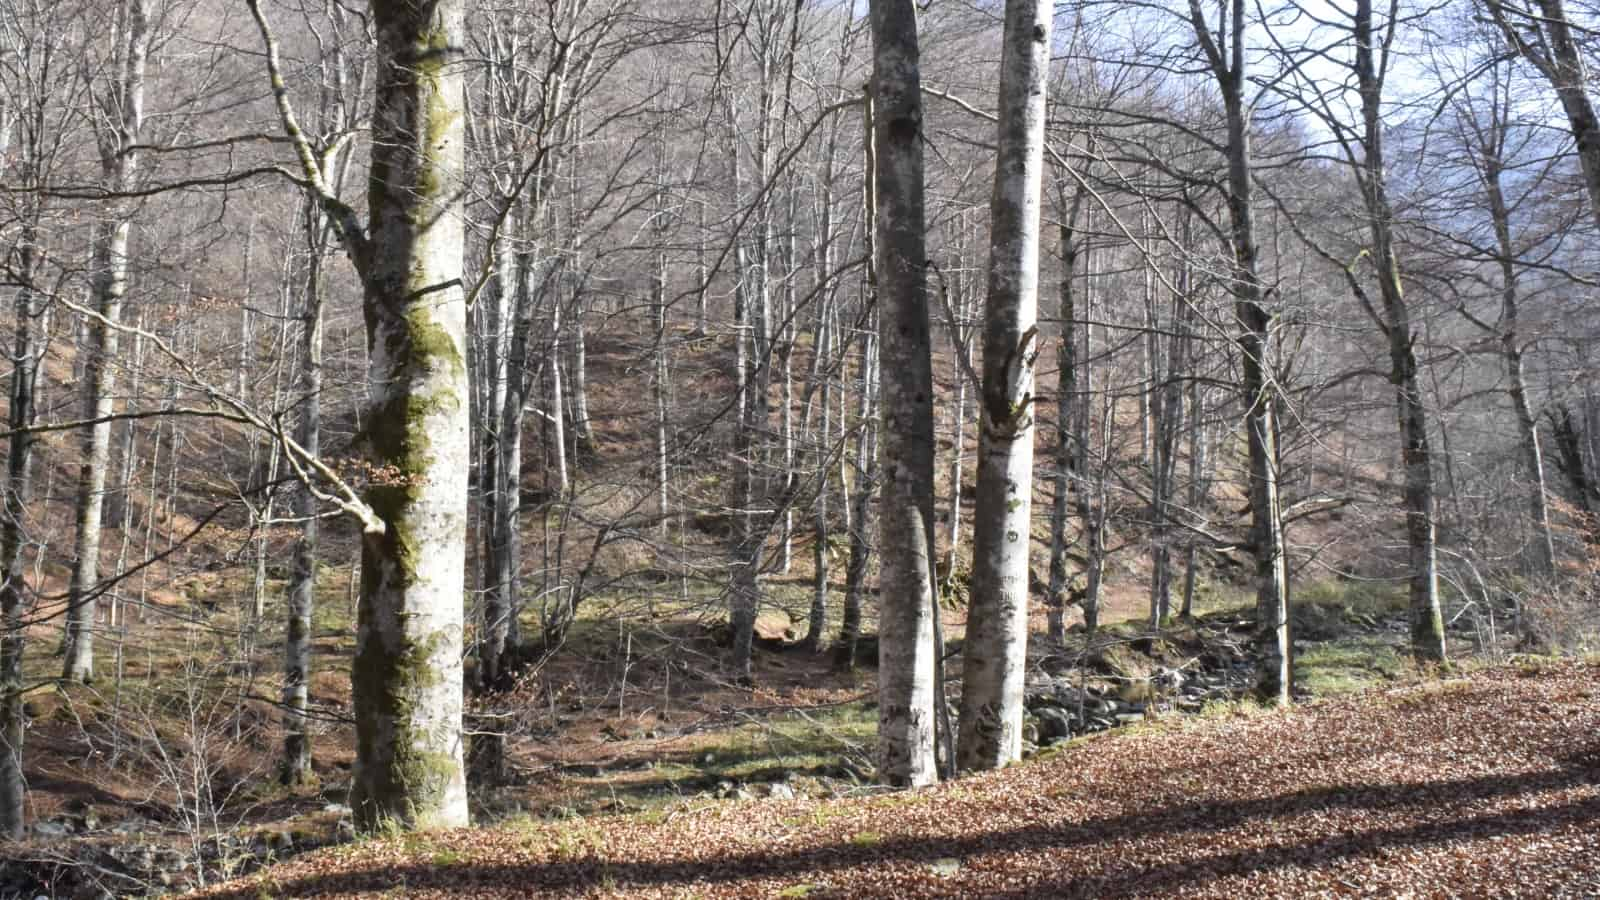 Beech forest - Photo: Central Balkan National Park/Stoyan Hristov